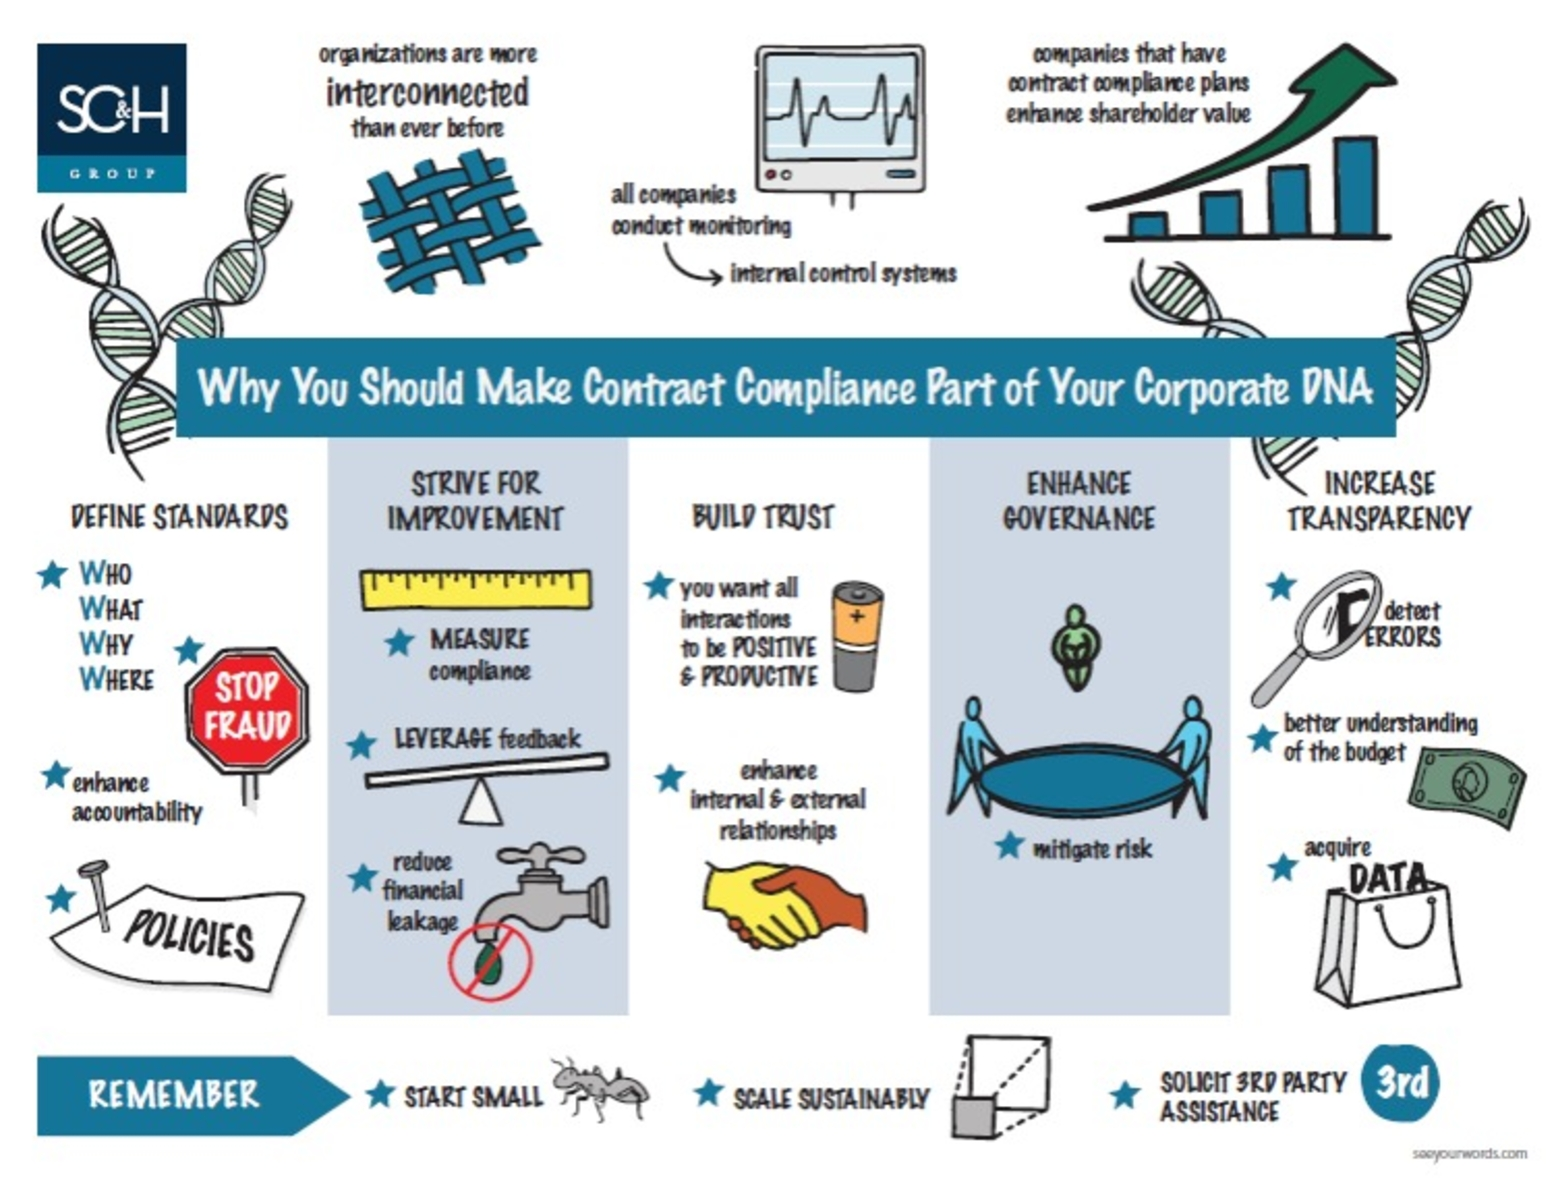 Why Contract Compliance Should Be Part of Your Corporate DNA [Graphic Recording]